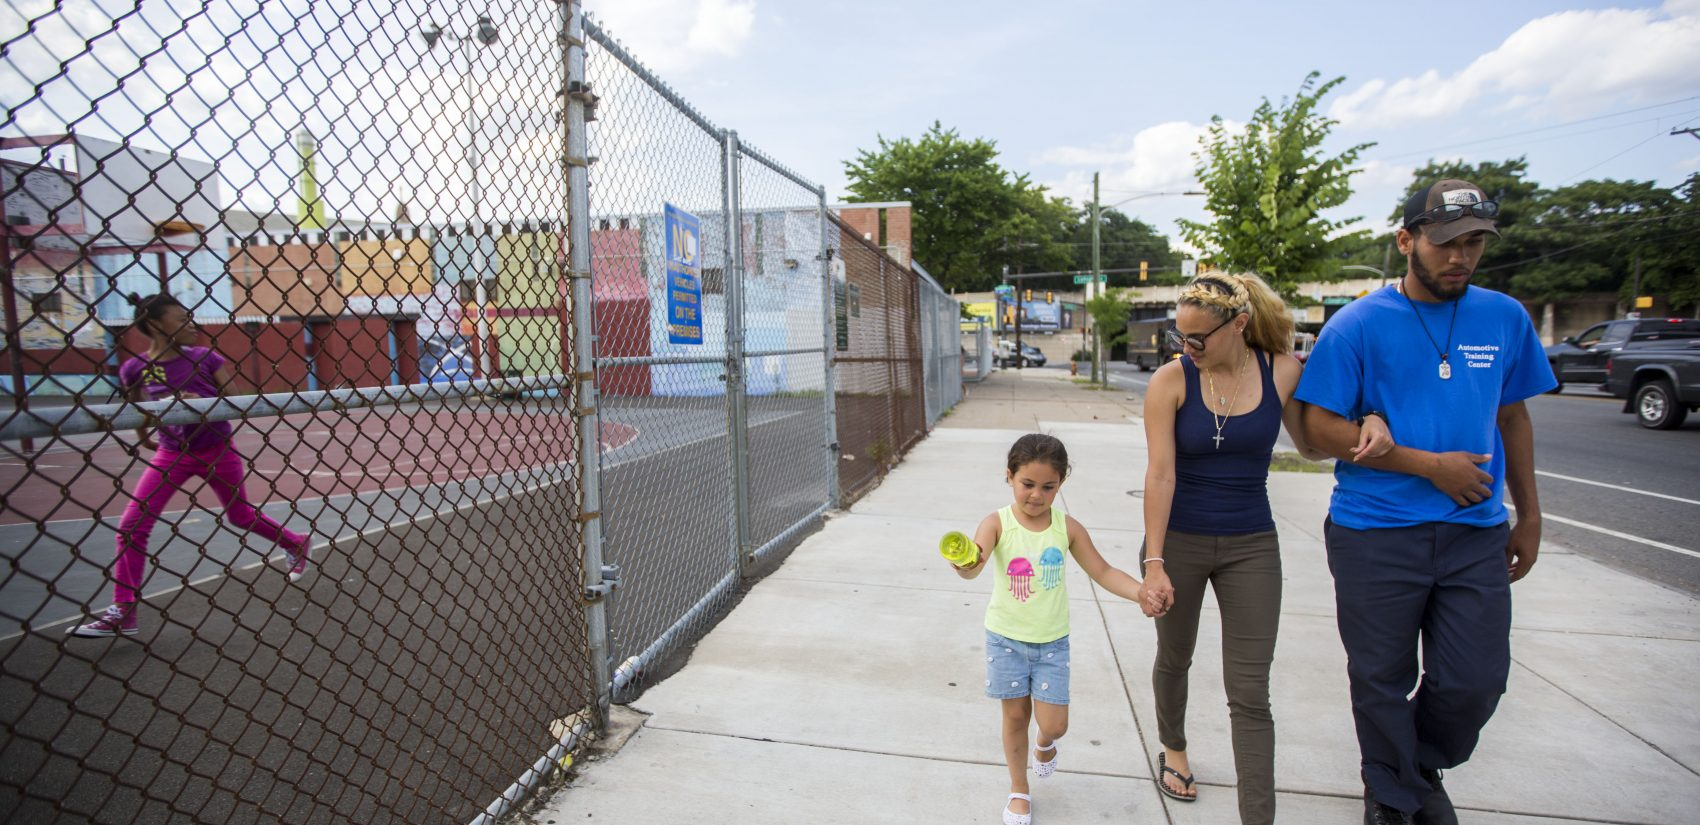 Savannah and Layla walk with Luis Felix (right), who hopes to become a mechanic. (Jessica Kourkounis/For Keystone Crossroads)